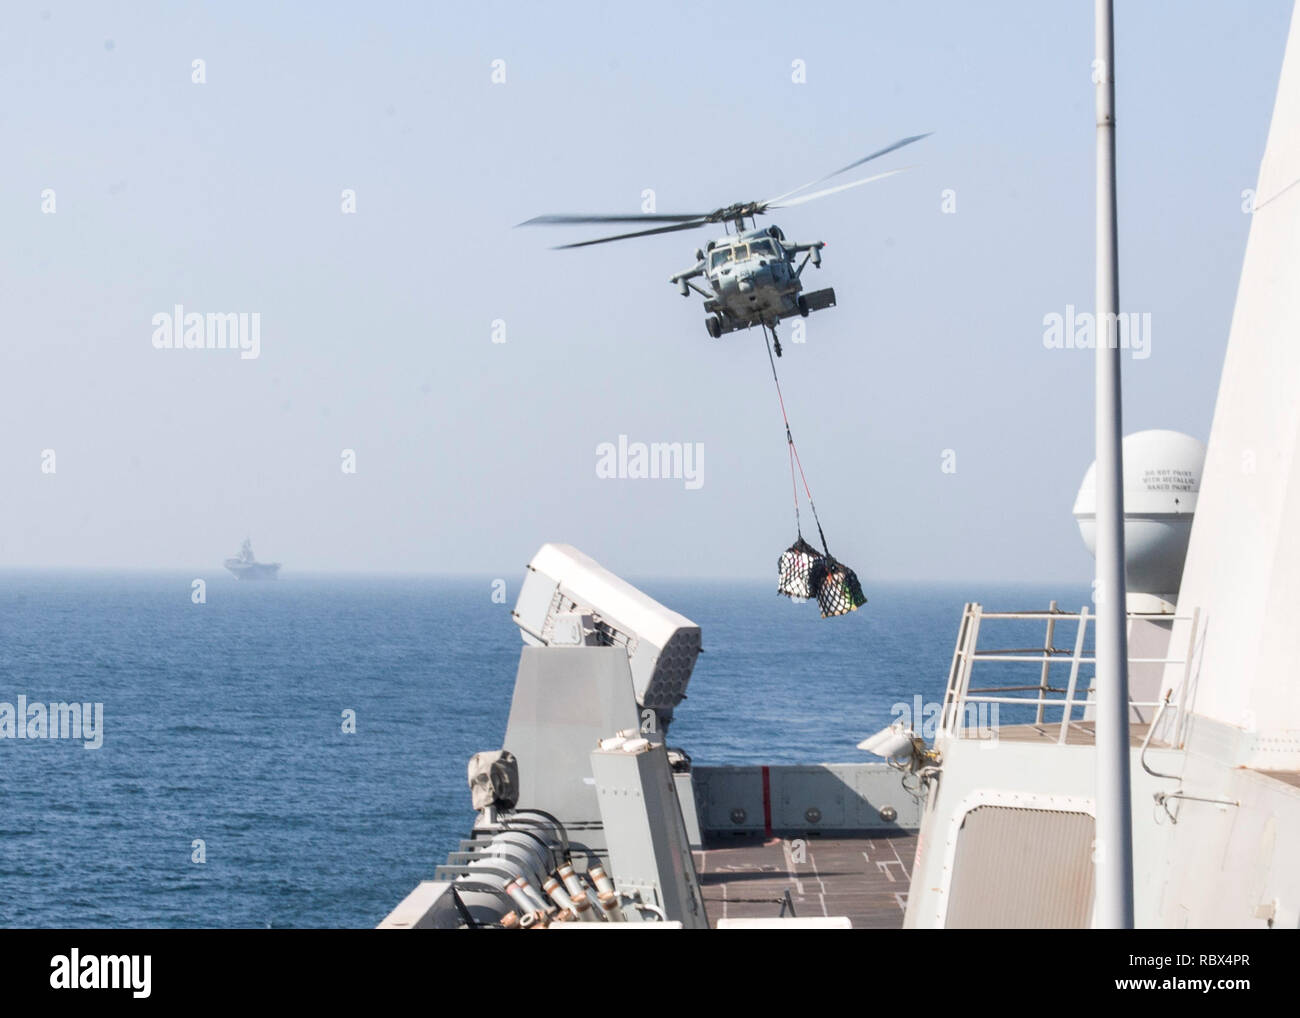 """190107-N-PH222-1933 ARABIAN SEA (Jan. 7, 2018) An MH-60S Sea Hawk helicopter attached to the """"Blackjacks"""" of Helicopter Sea Combat Squadron (HSC) 21, delivers supplies on the flight deck of the San Antonio-class amphibious transport dock ship USS Anchorage (LPD 23) during a vertical replenishment while on a deployment of the Essex Amphibious Ready Group (ARG) and 13th Marine Expeditionary Unit (MEU). The Essex ARG/13th MEU is flexible and persistent Navy-Marine Corps team deployed to the U.S. 5th Fleet area of operations in support of naval operations to ensure maritime stability and security  - Stock Image"""